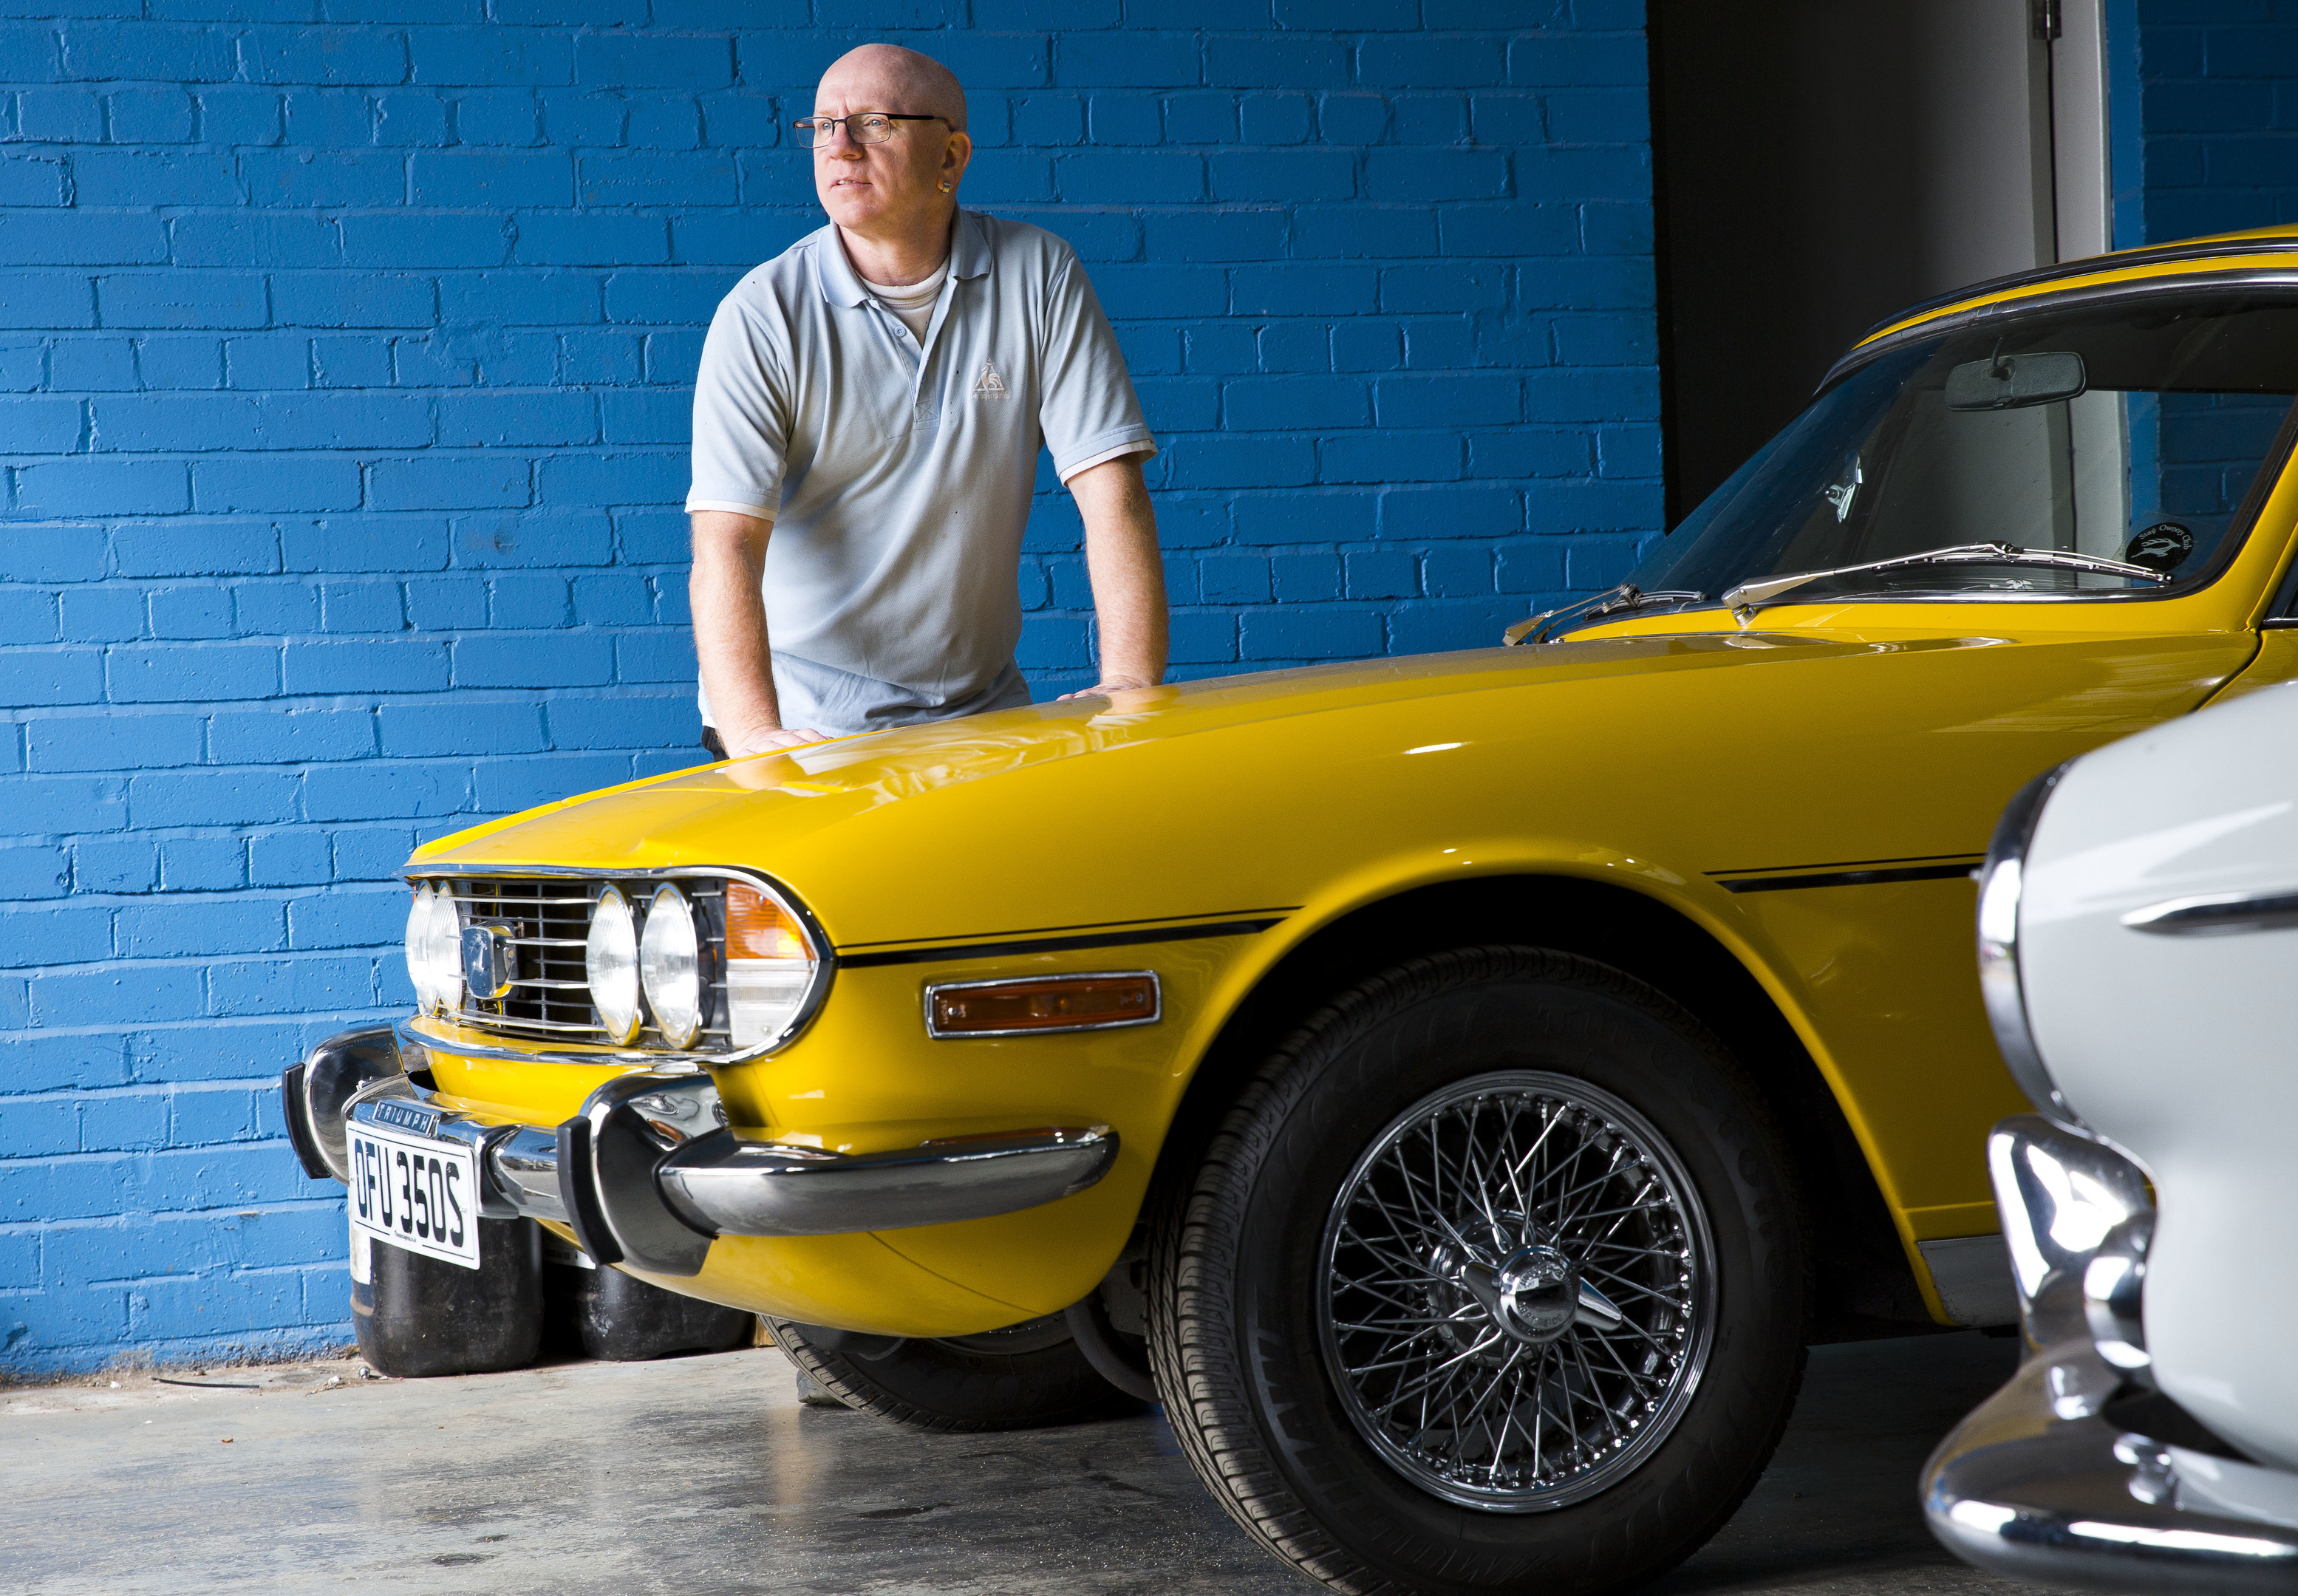 David Mutch owns and runs Clydesdale Cars in East Kilbride who repair and restore classic cars (Jamie Williamson)